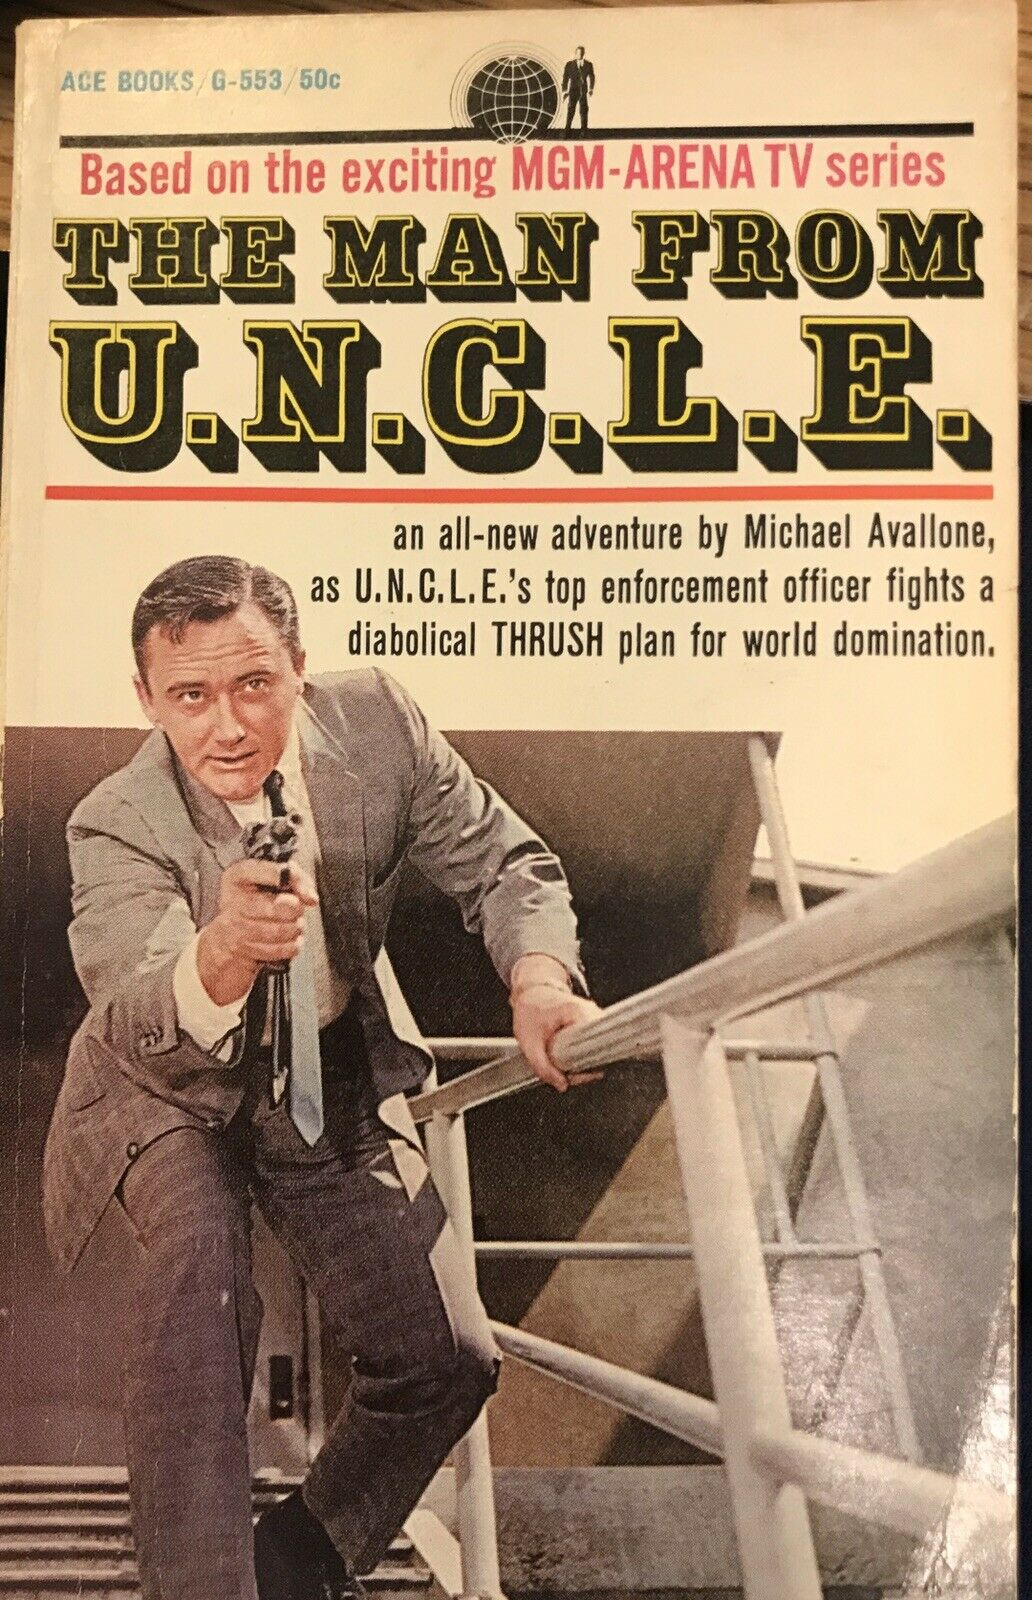 THE MAN FROM U.N.C.L.E. by Michael Avallone ~ ACE Books #G-553 ~ SCARCE! |